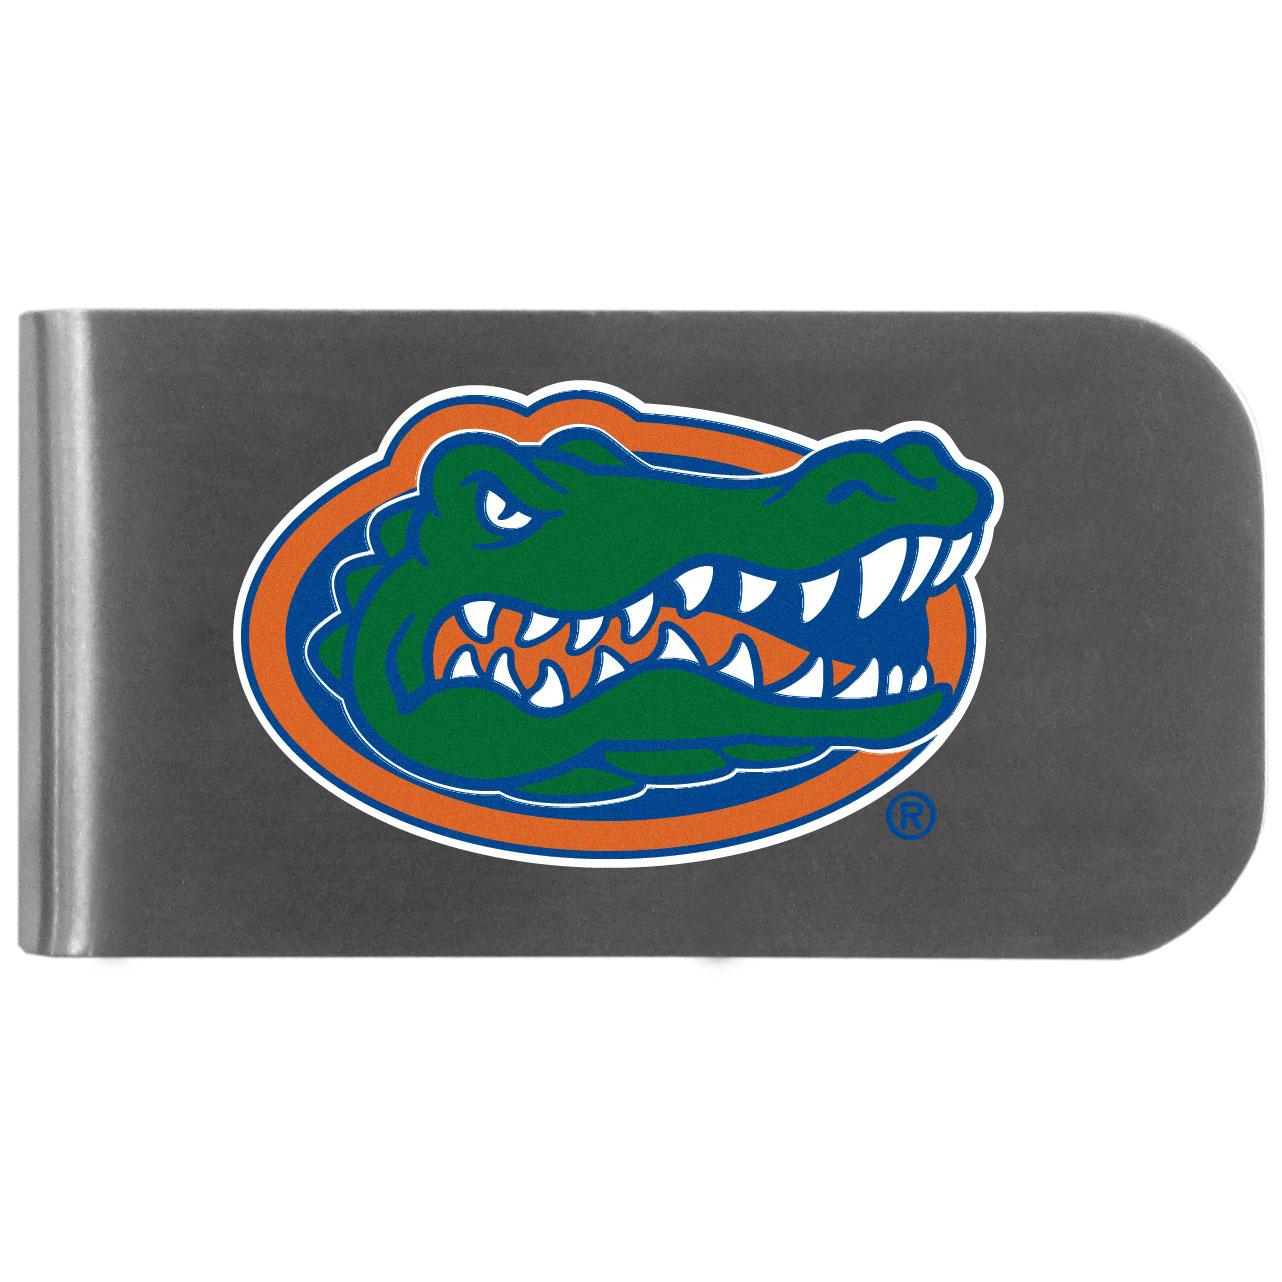 Florida Gators Logo Bottle Opener Money Clip - This unique money clip features a classic, brushed-metal finish with a handy bottle opener feature on the back. The clip has the Florida Gators logo expertly printed on the front of the clip.